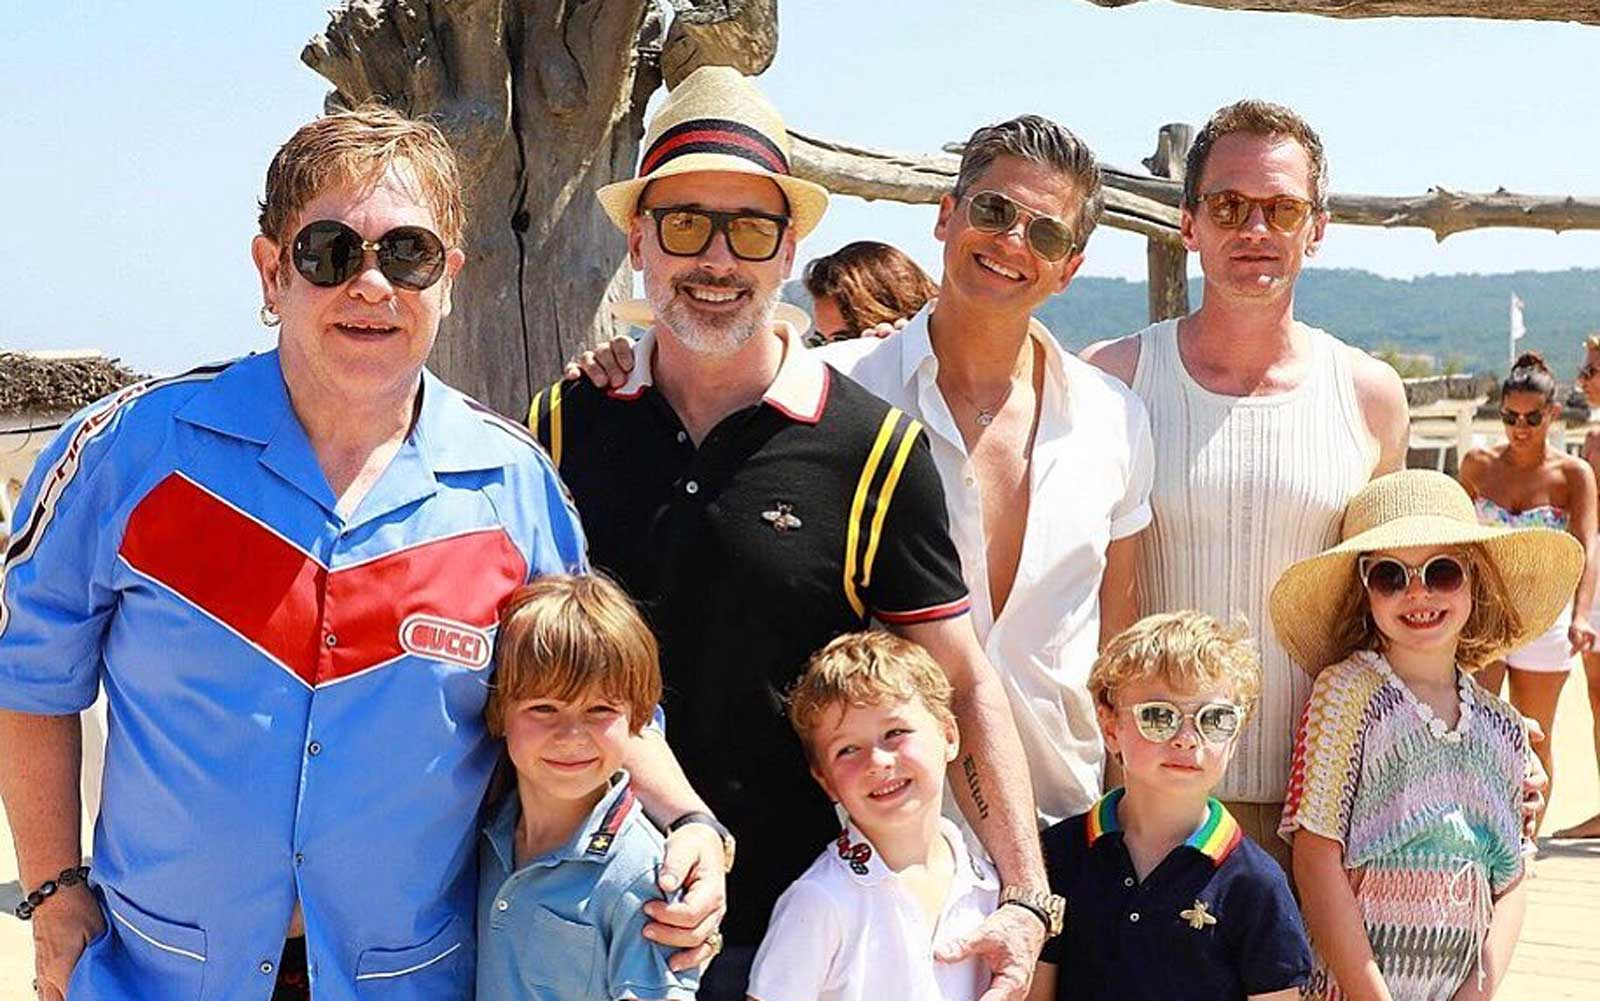 Neil Patrick Harris and Elton John Took Their Families on Vacation Together and the Photos Couldn't Be Cuter